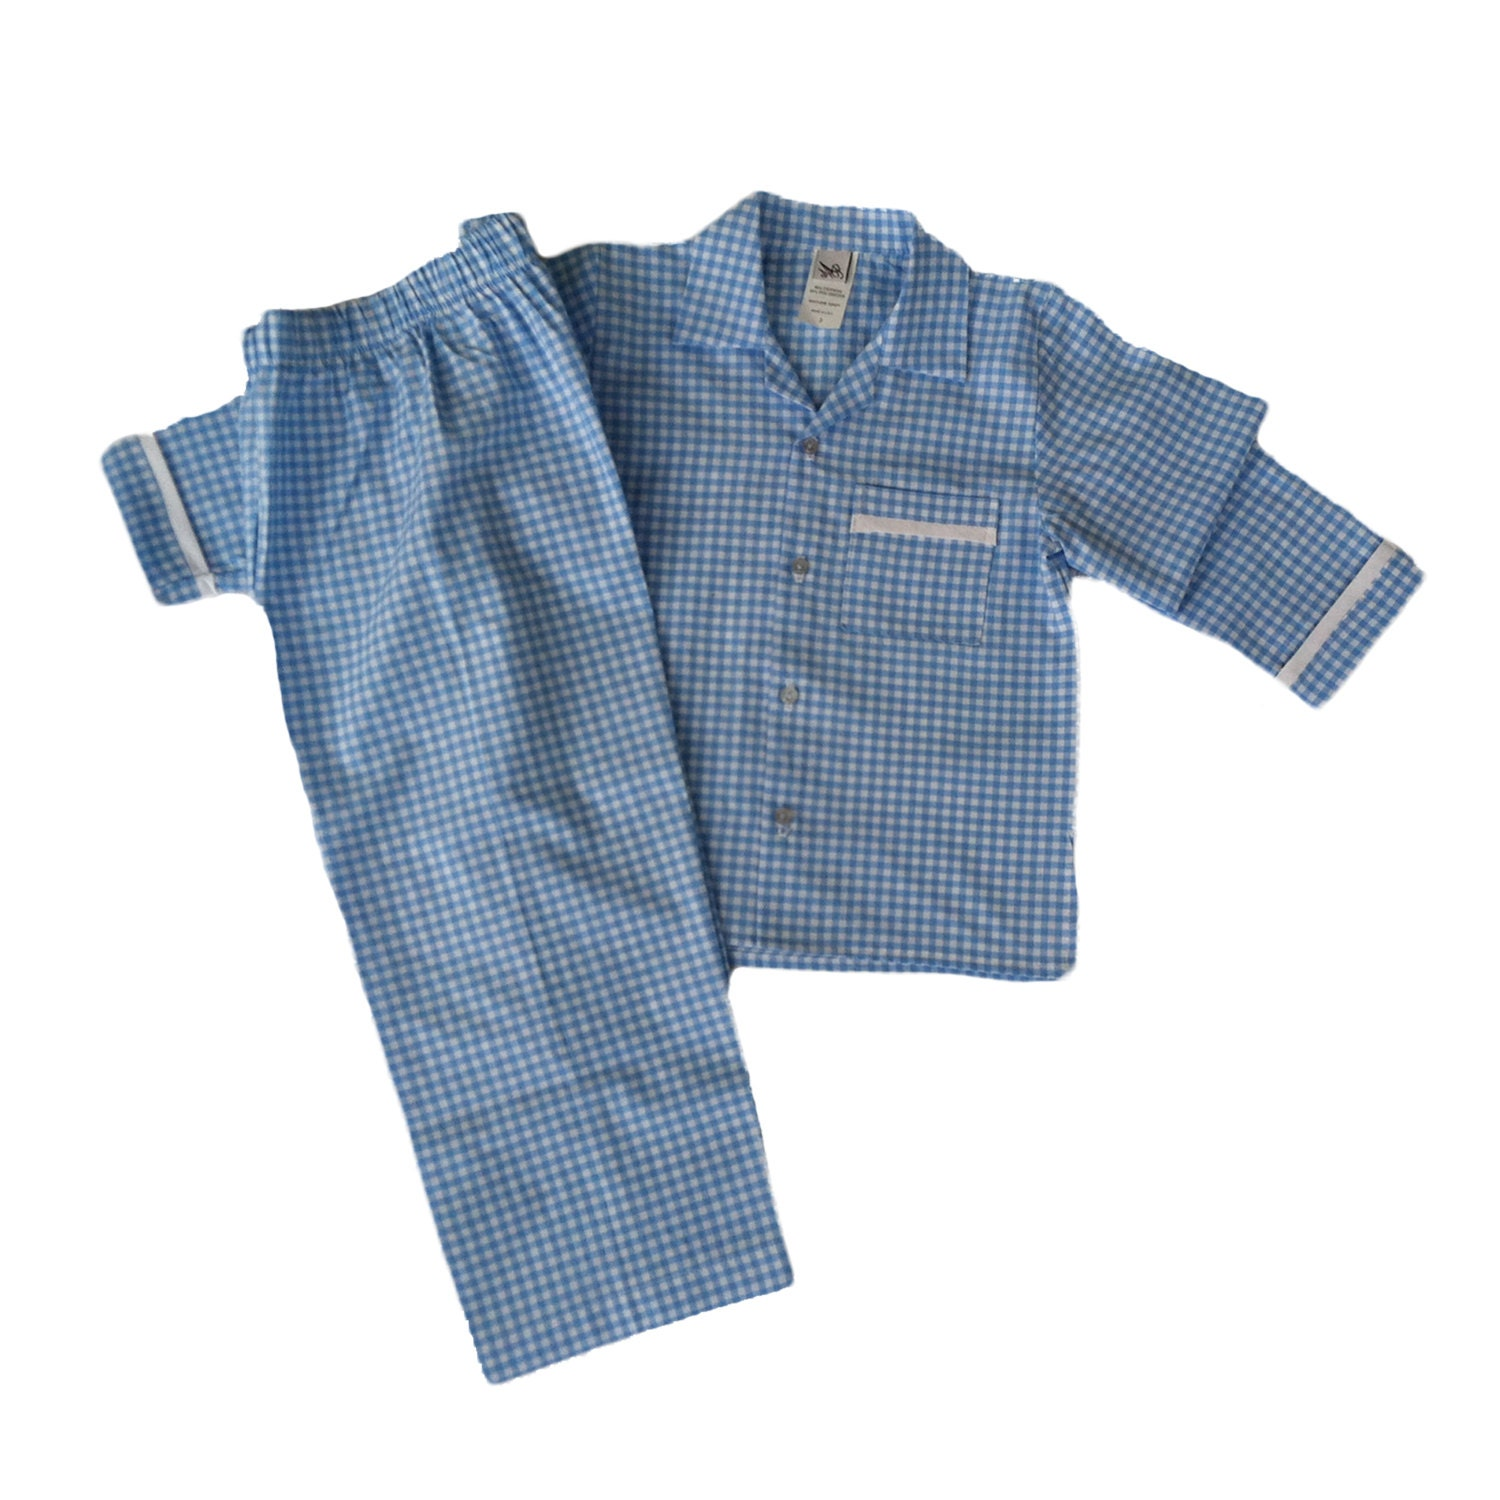 Classic Matching Pajamas entire family. Classic Long Sleeve